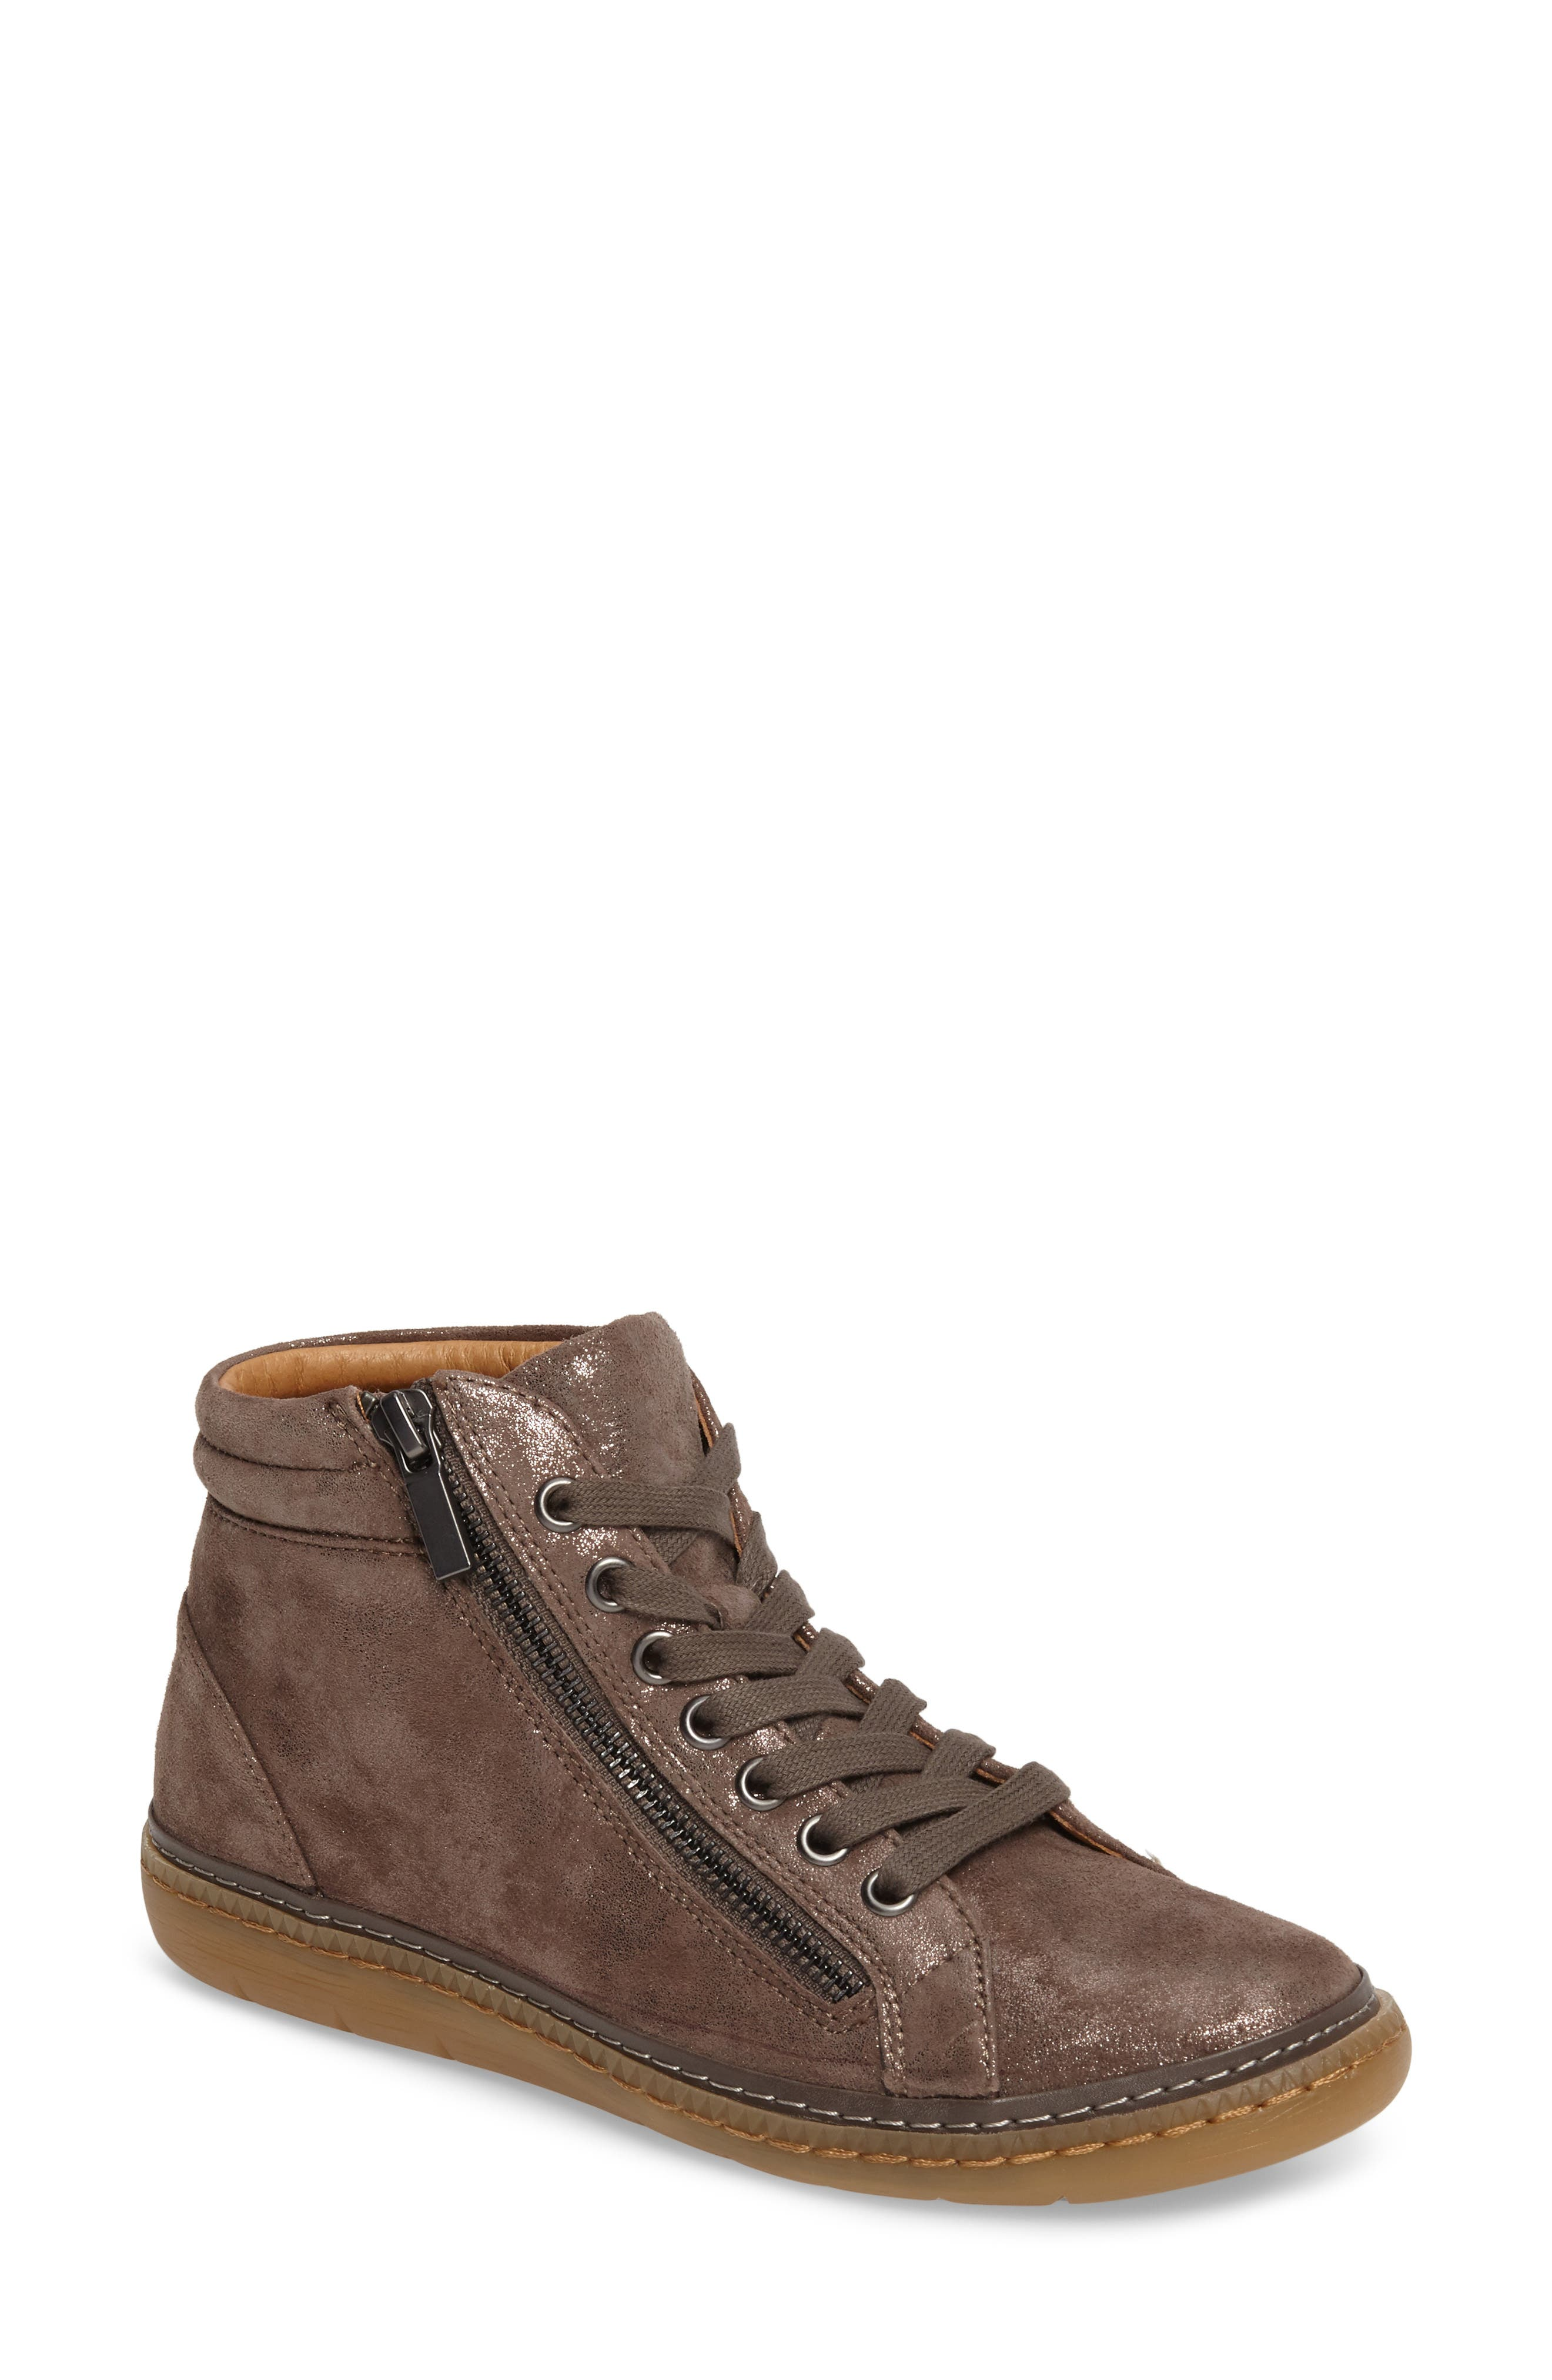 Annaleigh High Top Sneaker,                         Main,                         color, SMOKE FOIL SUEDE